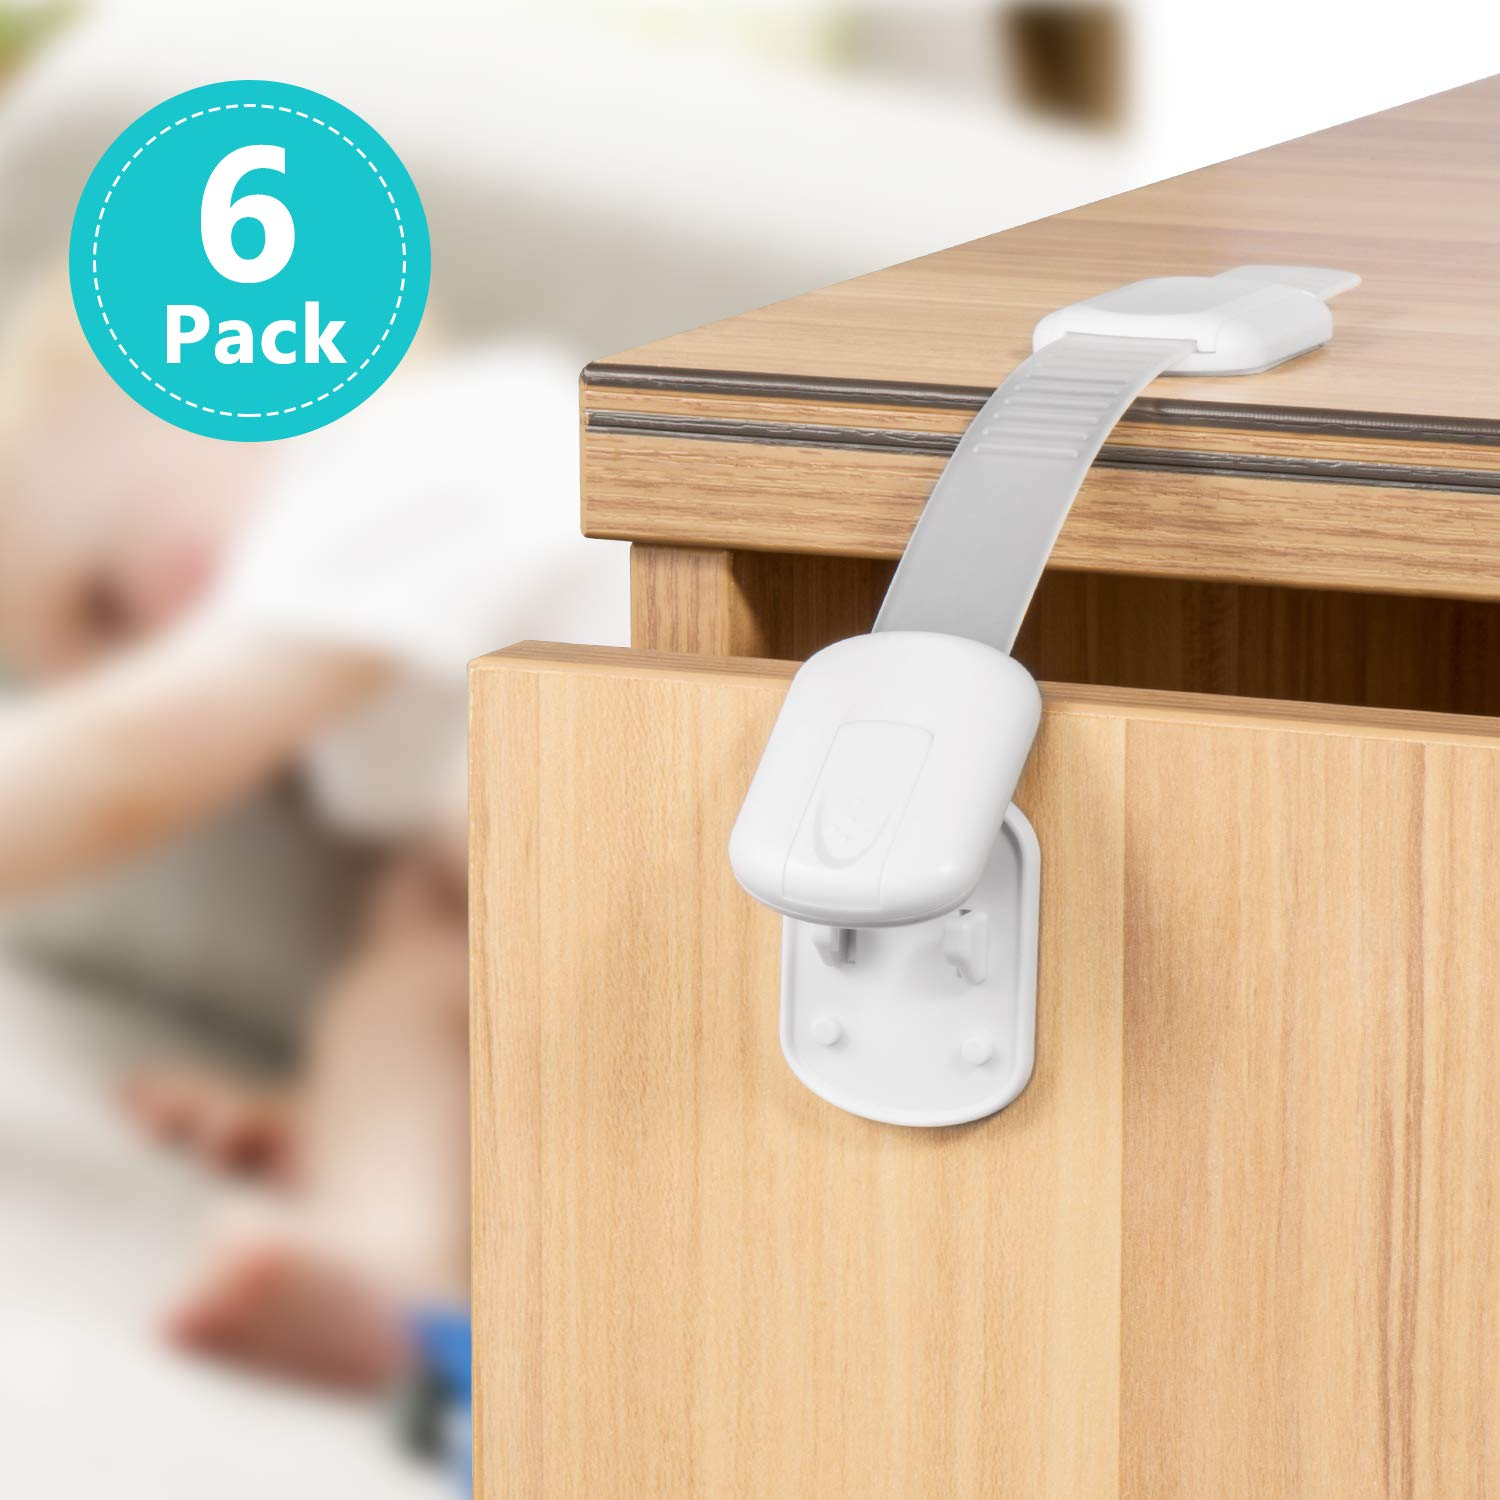 Child Safety Cabinet Locks, 6 Pack Latches with Adjustable Strap for Baby Proofing Cabinets, Drawers, Appliances, Toilet Seat and Fridge - No Drilling with 3M Adhesive Included Cynkie